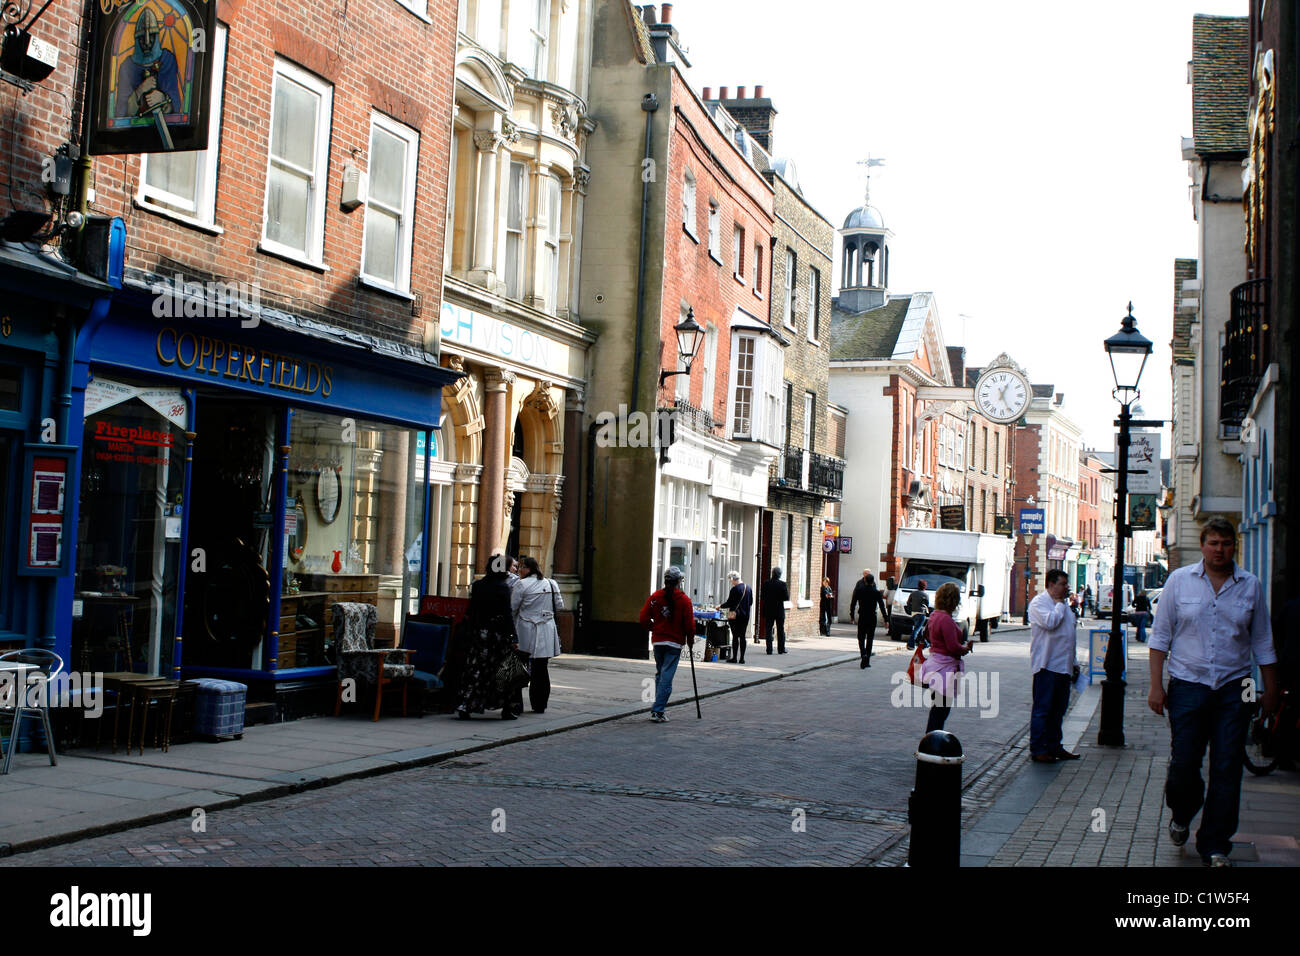 town of rochester kent 2011 - Stock Image